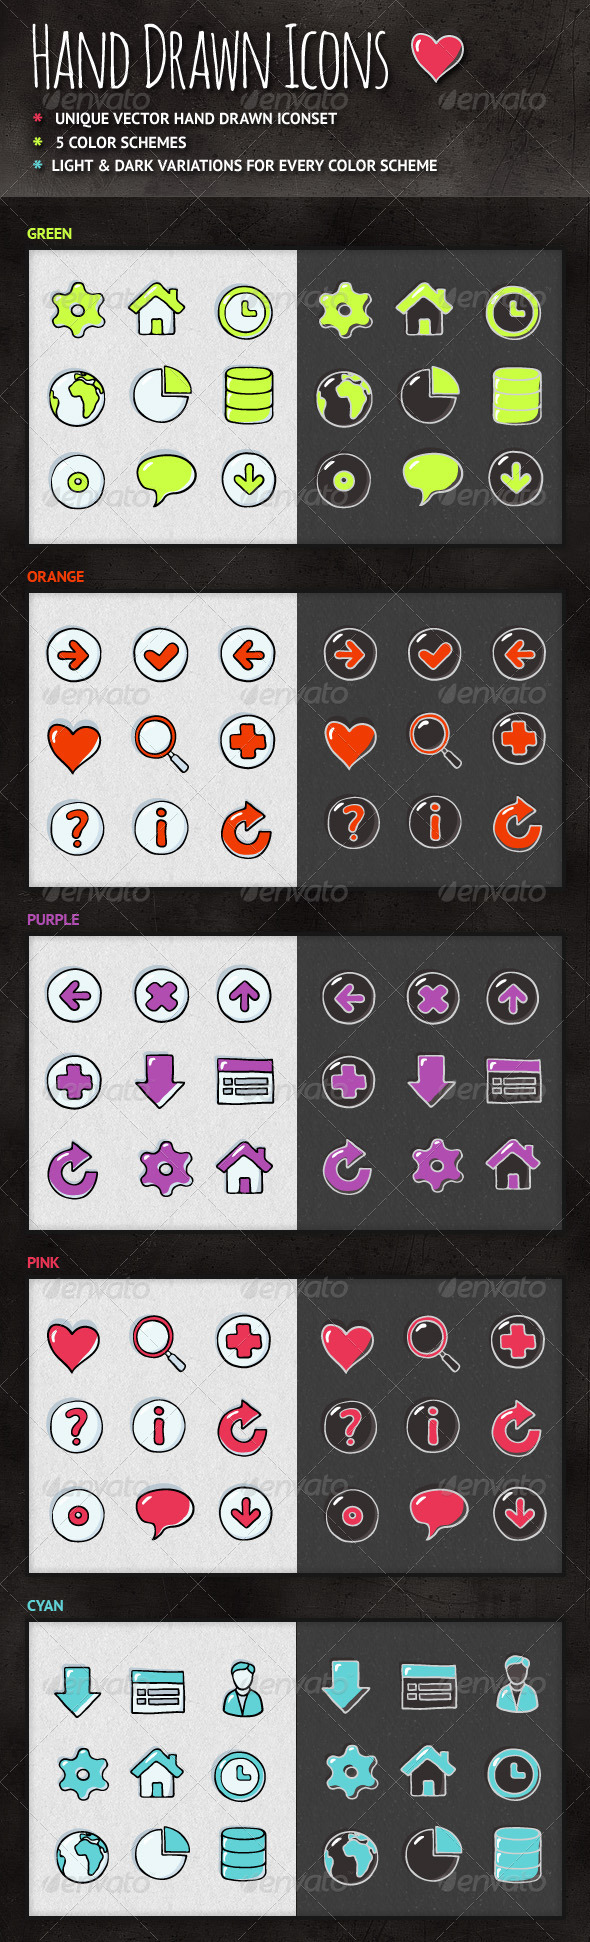 GraphicRiver Hand Drawn Icons 3969382